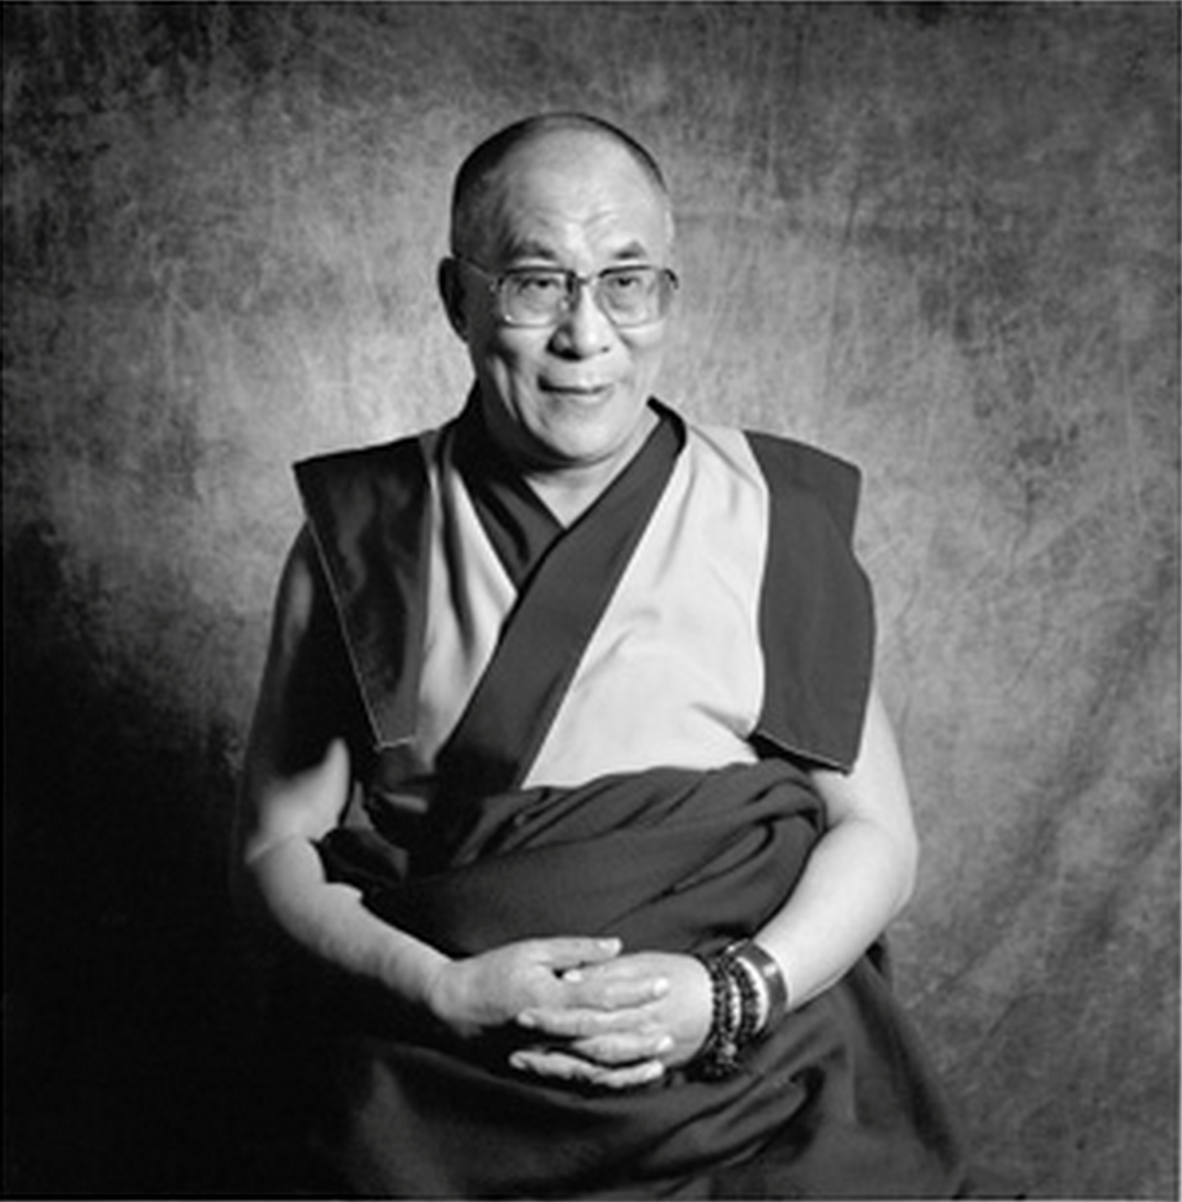 His Holiness the Dalai Lama: I began to advise people about Dolgyal, making clear that how they responded was up to them. I did not insist on what others might do. Many Tibetans and Westerners understood the history of the practice and stopped doing it. There were several great masters who staunchly opposed the Dolgyal practice in the past (…).